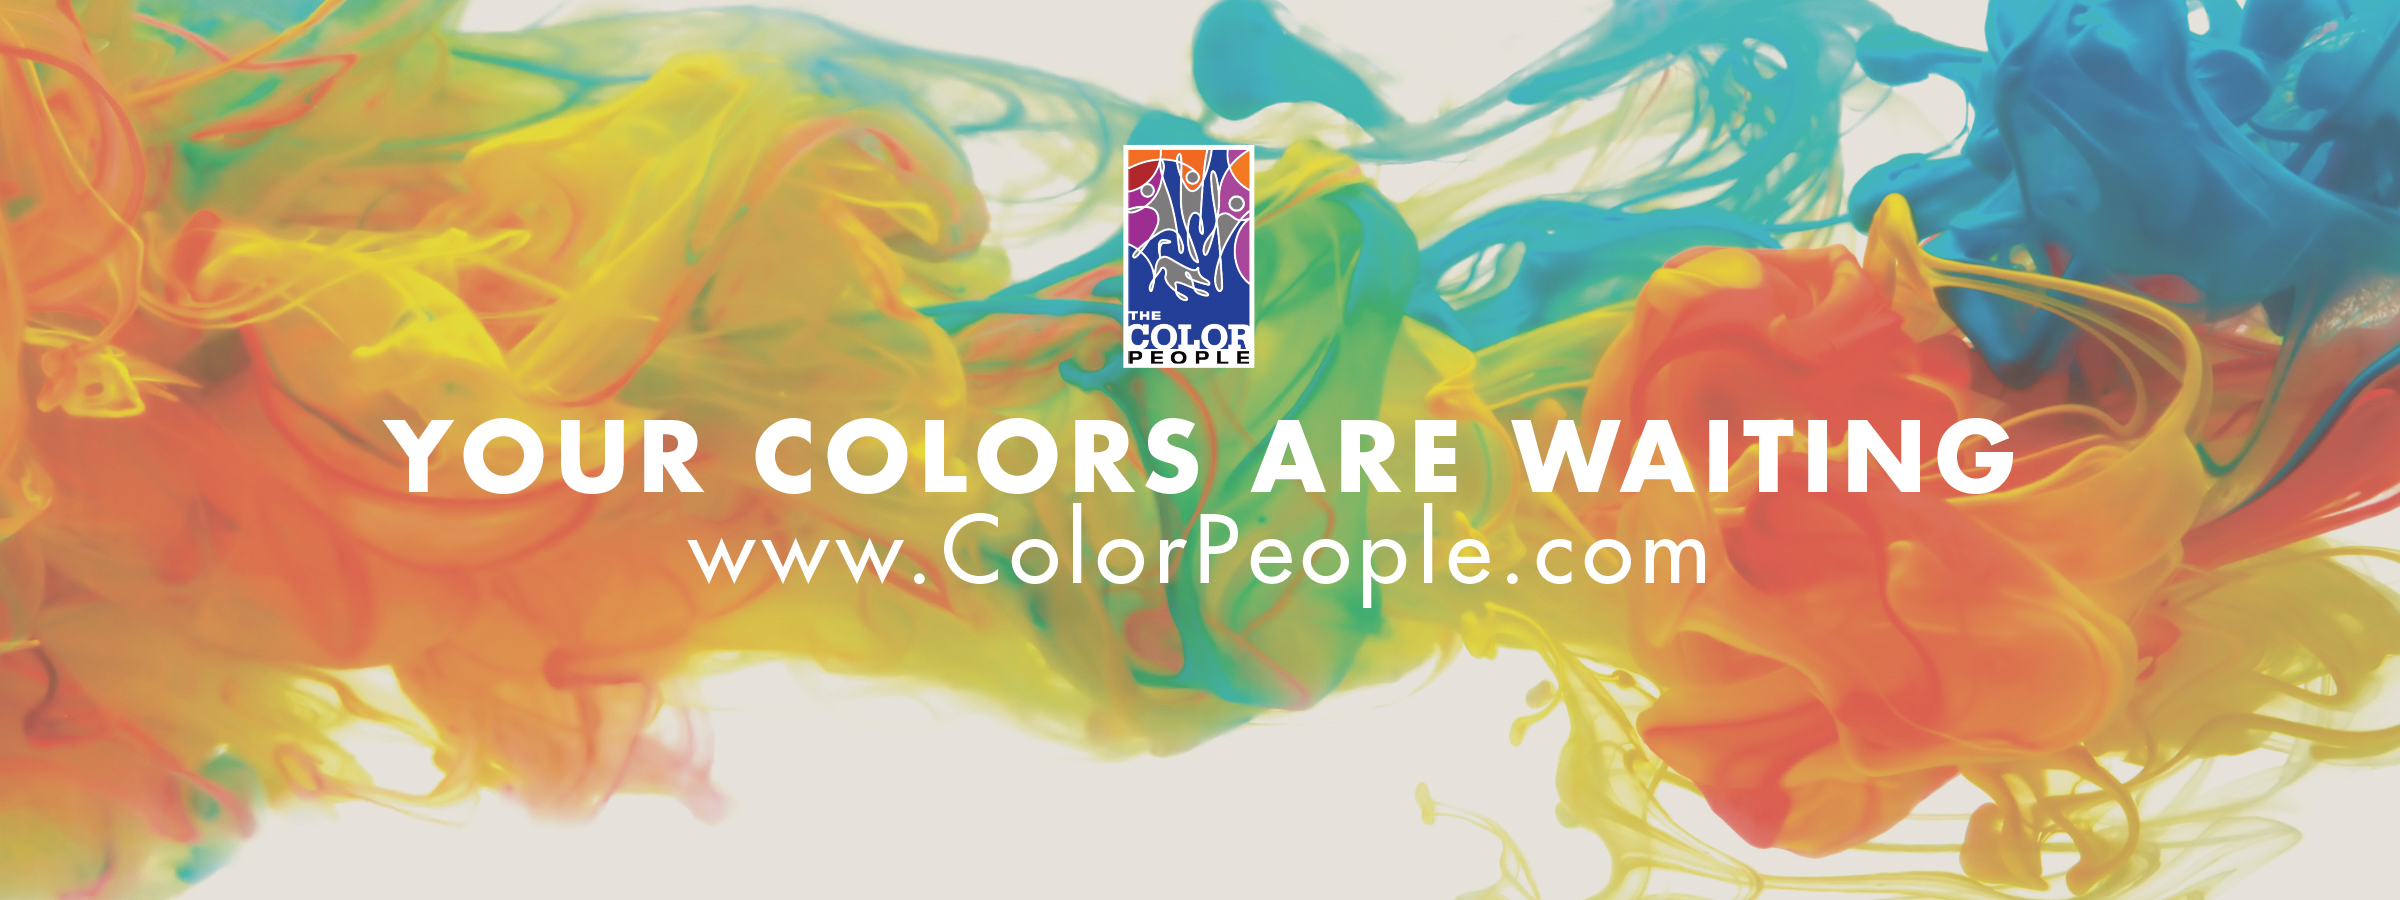 the-color-people-web-announcement.jpg